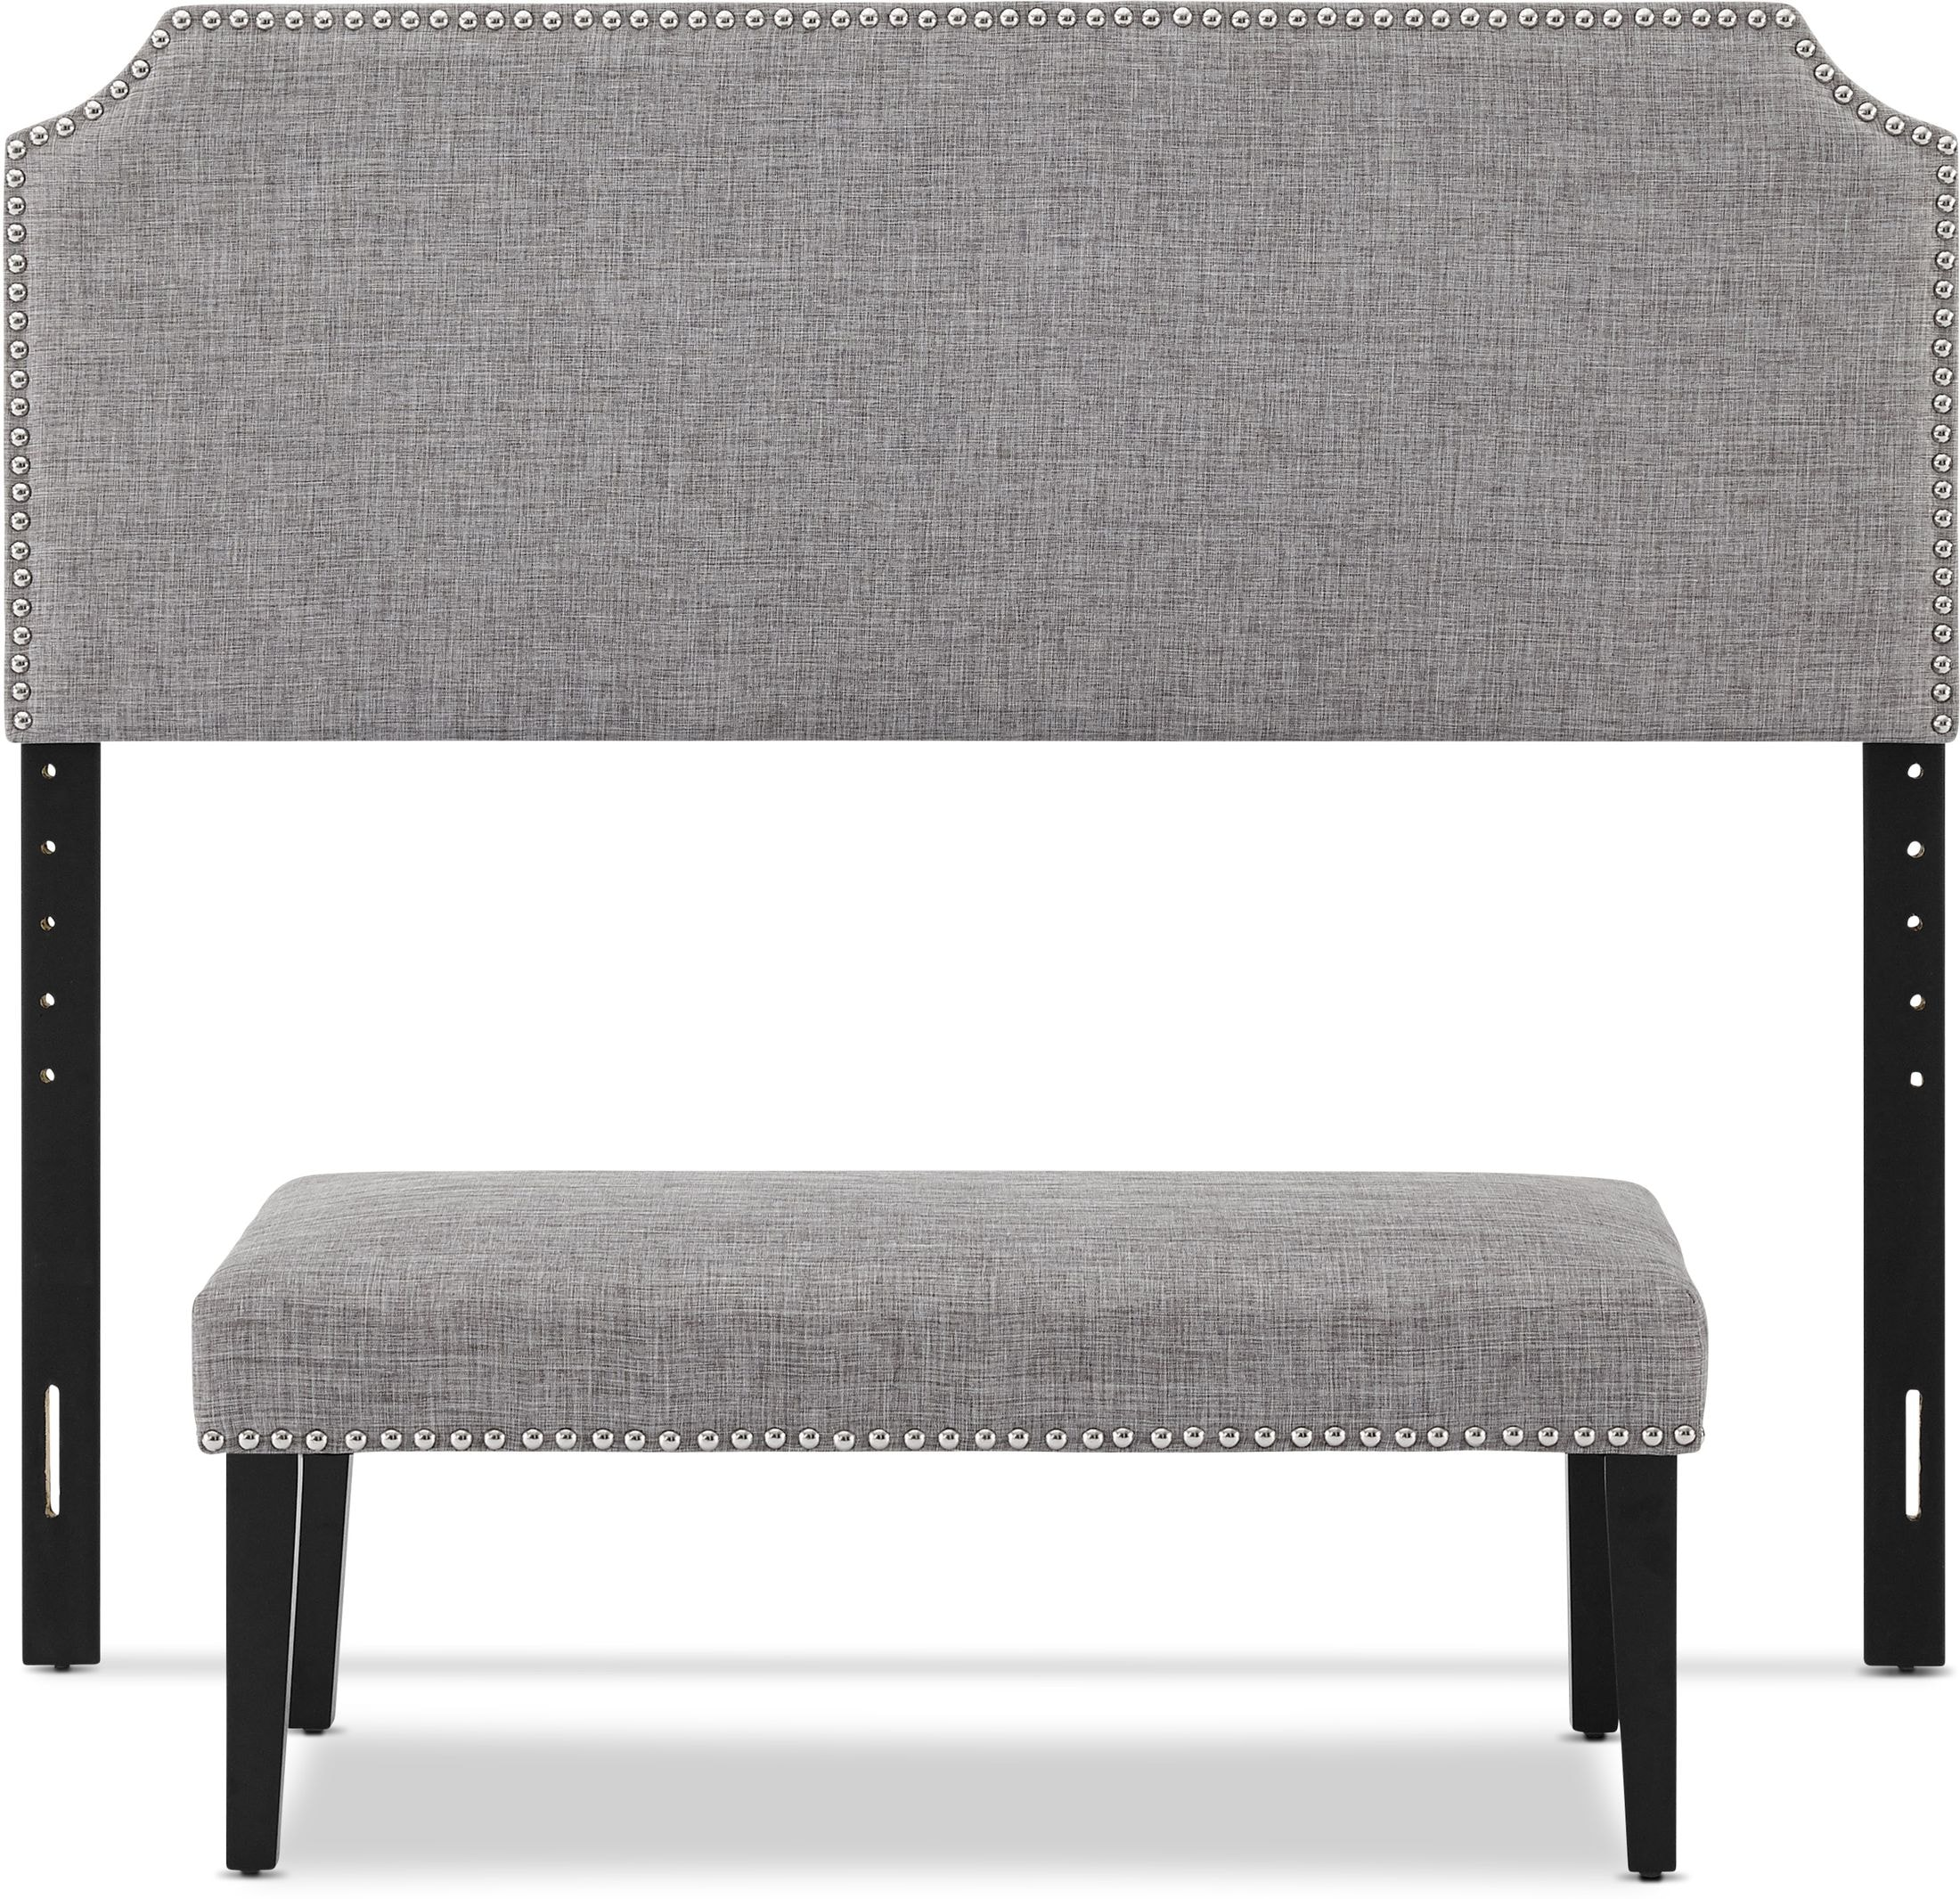 Bedroom Furniture - Piper Queen Upholstered Headboard and Bench Set